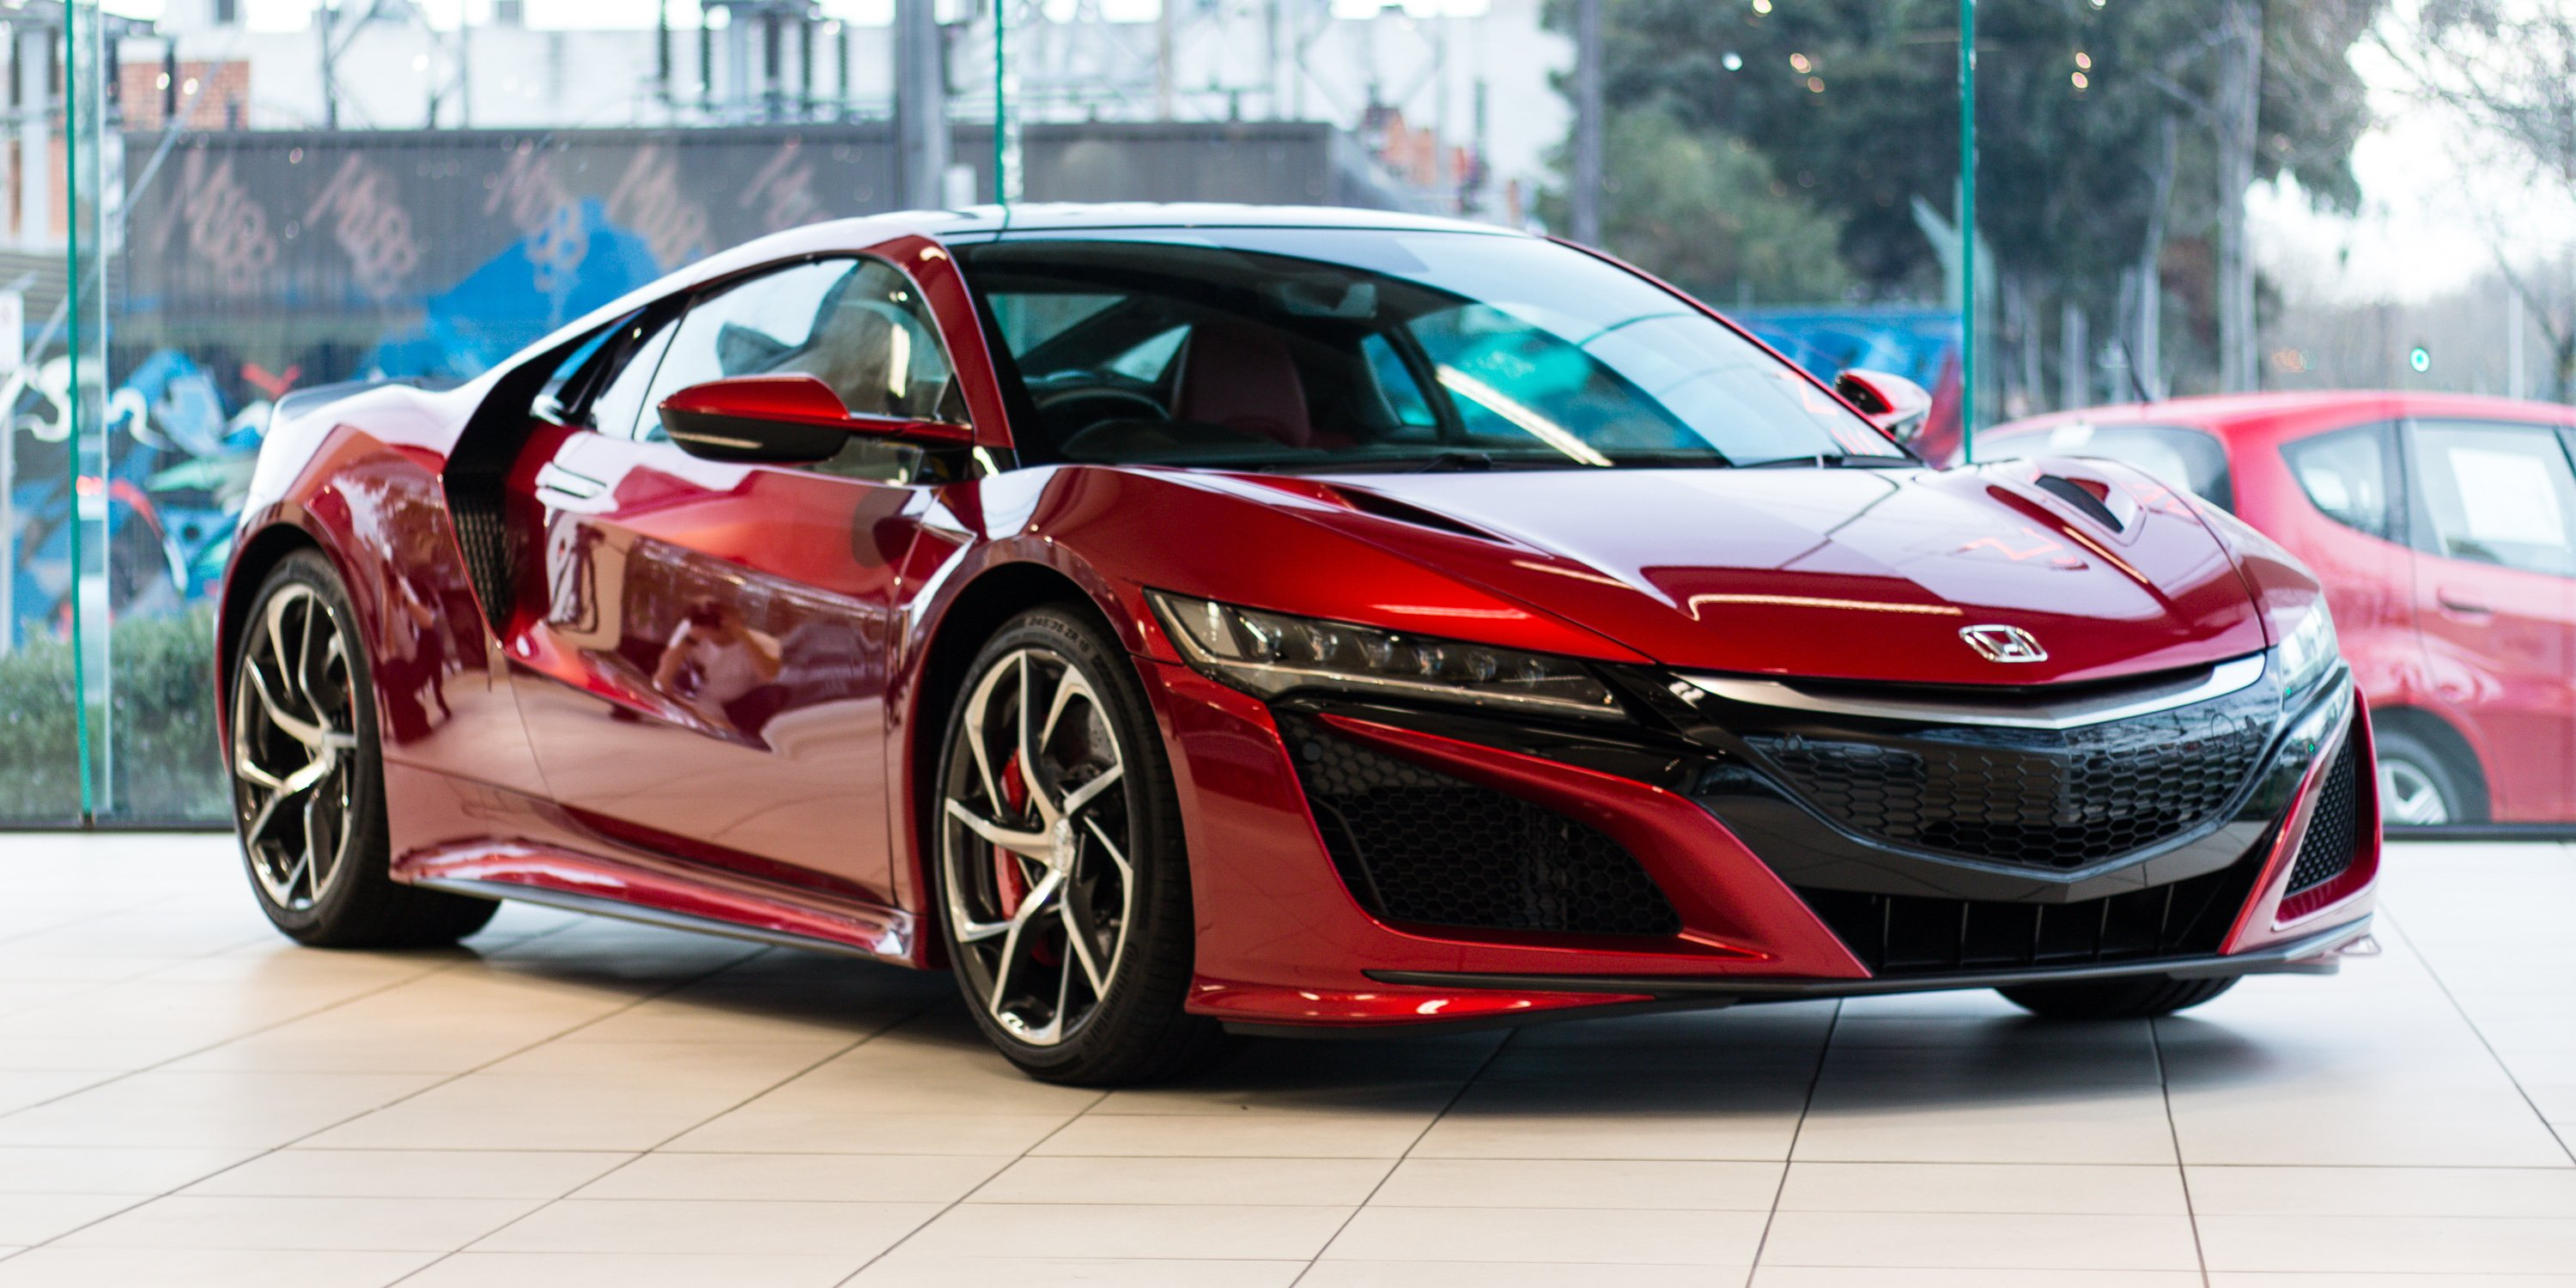 2017 honda nsx 420 000 driveaway price tag tipped for for Honda hybrid cars